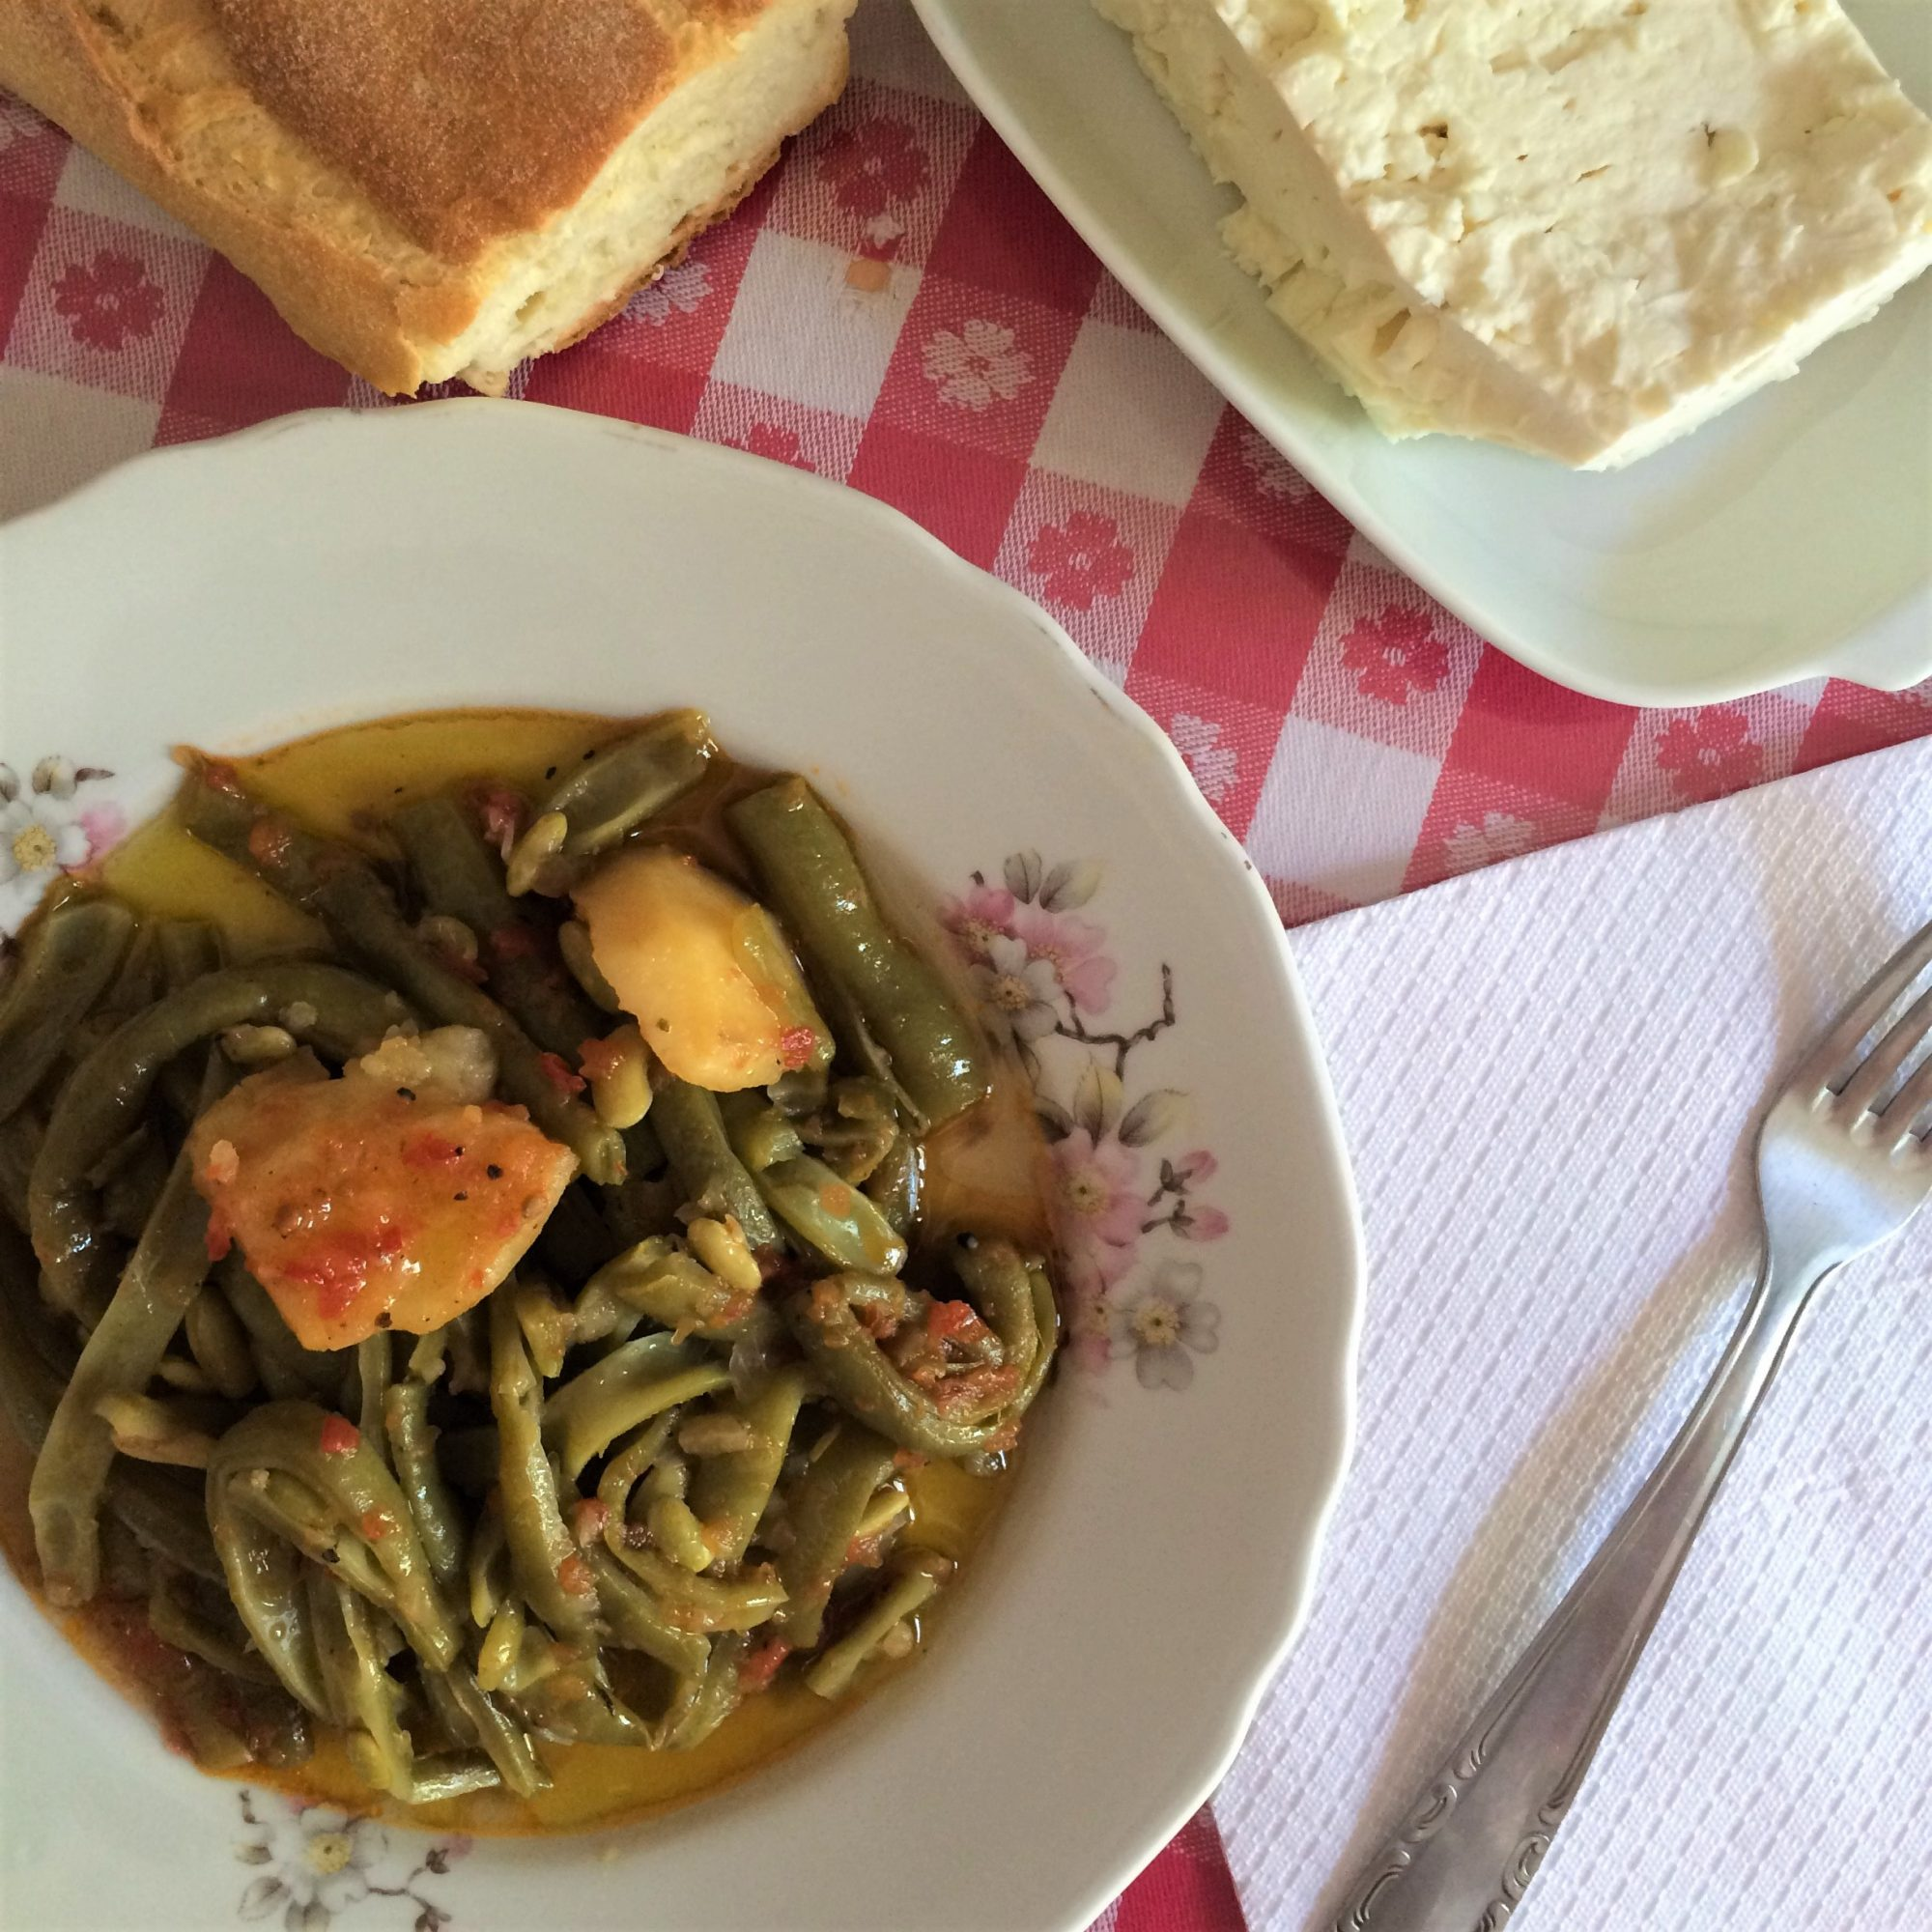 A typical Greek meal of fasolakia green beans with bread and feta cheese on the side.